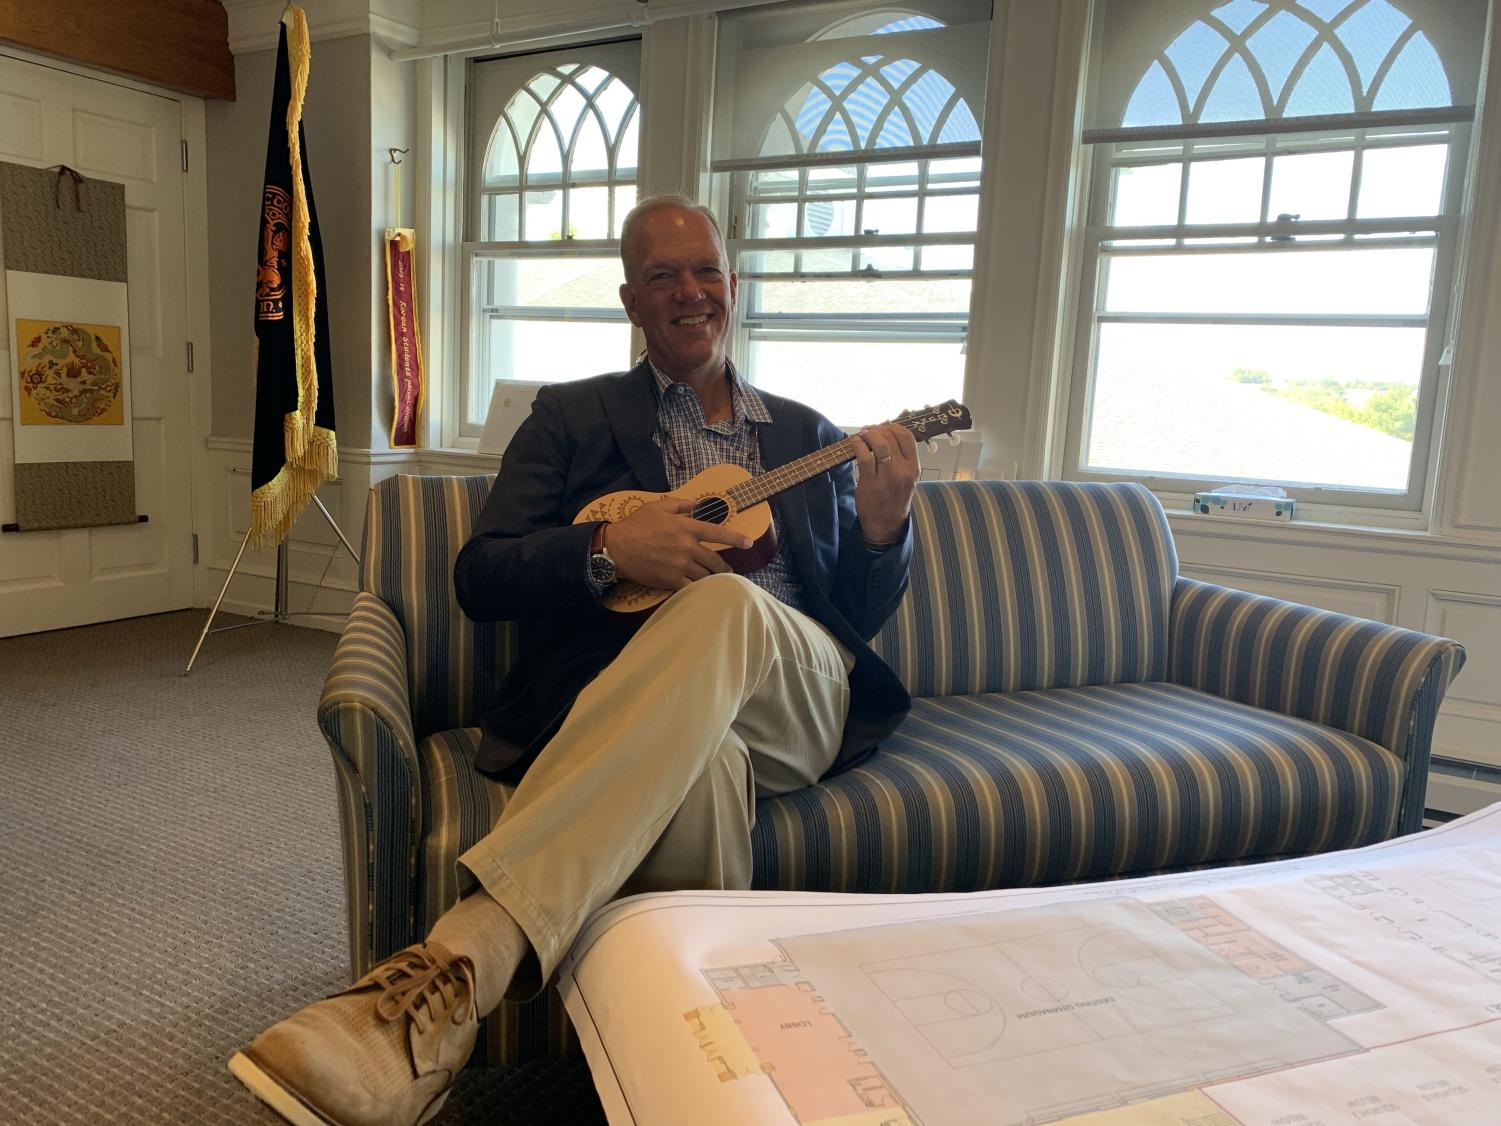 Mr. Williams is finally learning to play a musical instrument, a lifelong goal of his.